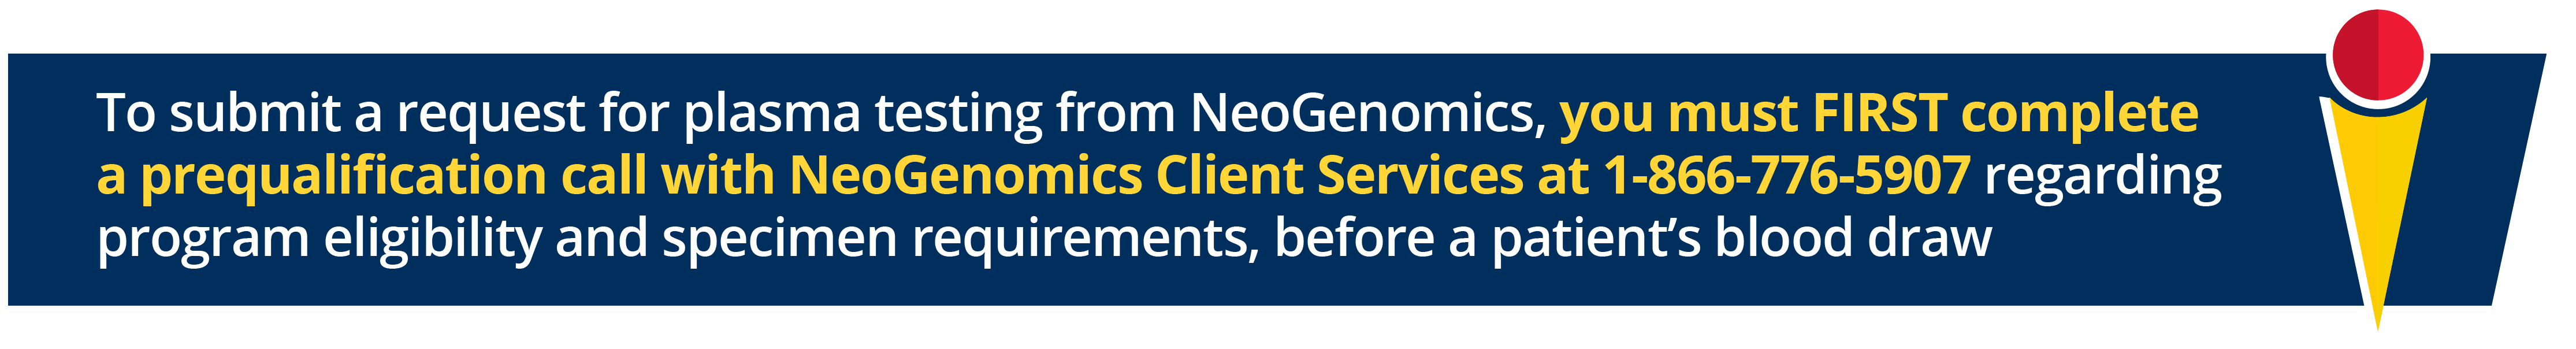 To submit a request for plasma testing from NeoGenomics, you must FIRST complete a prequalification call with NeoGenomics Client Services at 1-866-776-5907 regarding program eligibility and specimen requirements, before a patient's blood draw